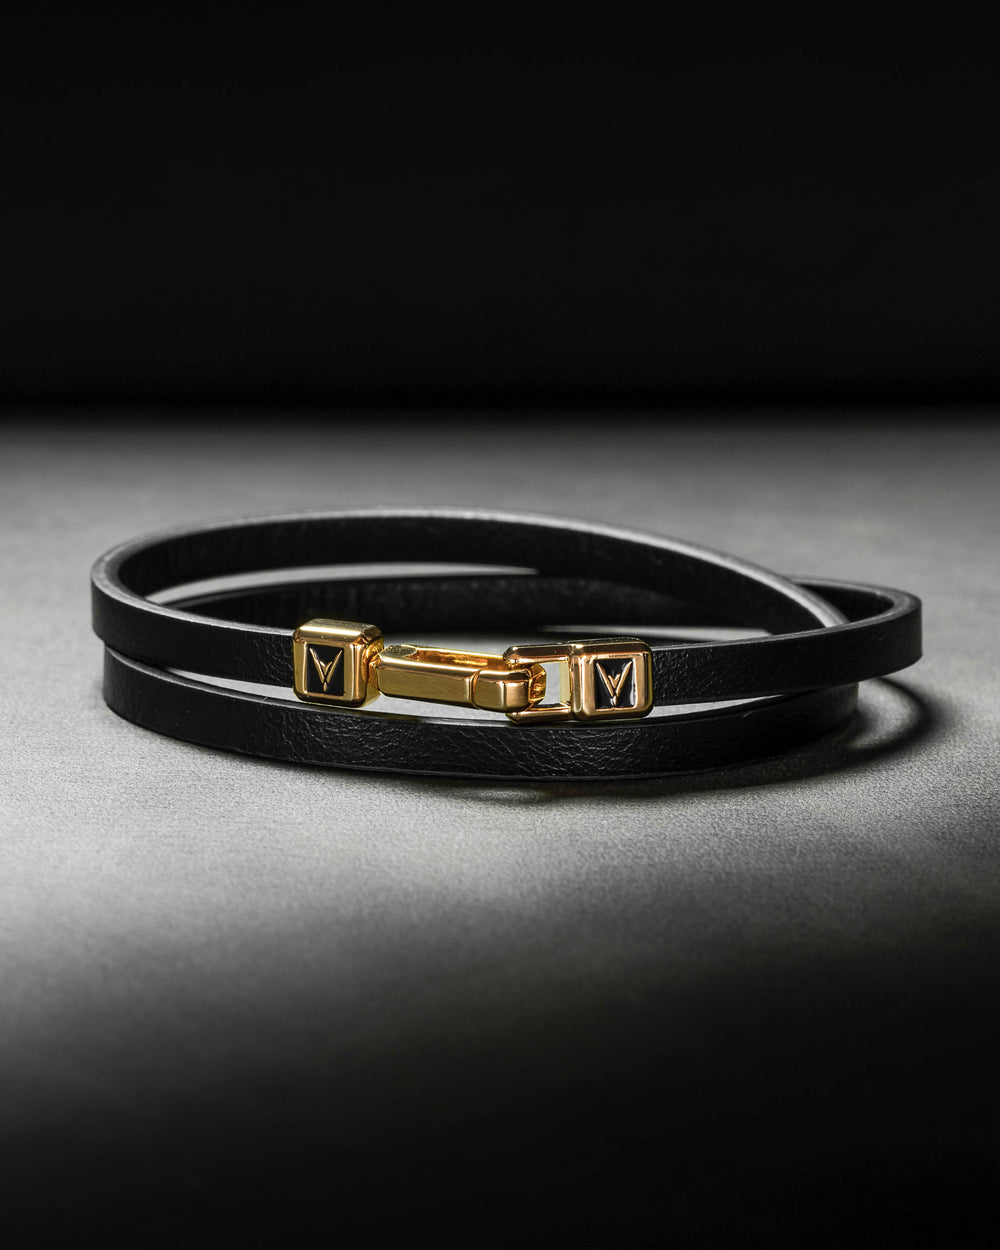 Men's Luxury Black Italian Leather Double Bracelet Strap with a Gold Magnetic Closure